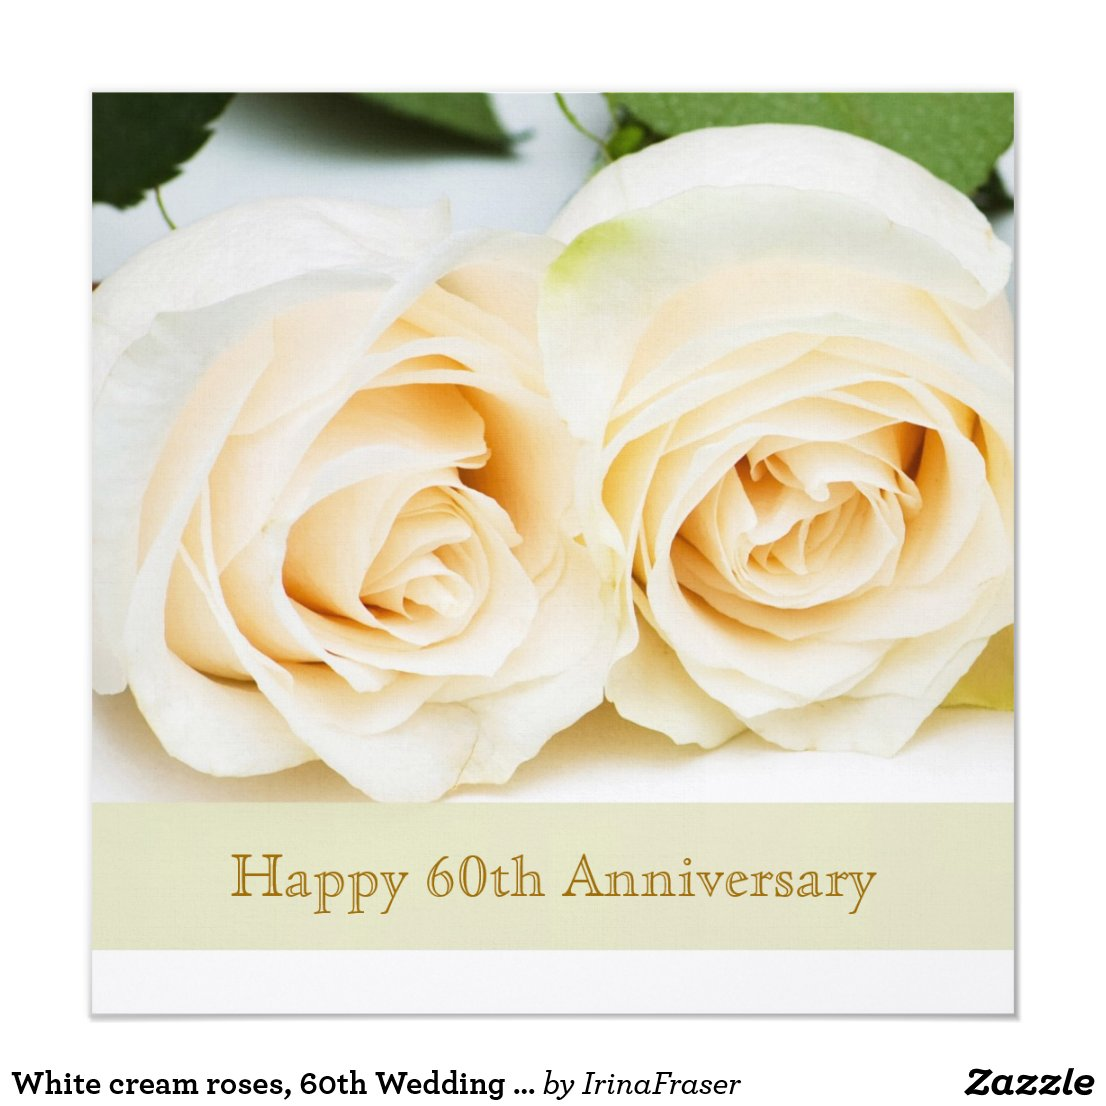 White cream roses, 60th Wedding Anniversary